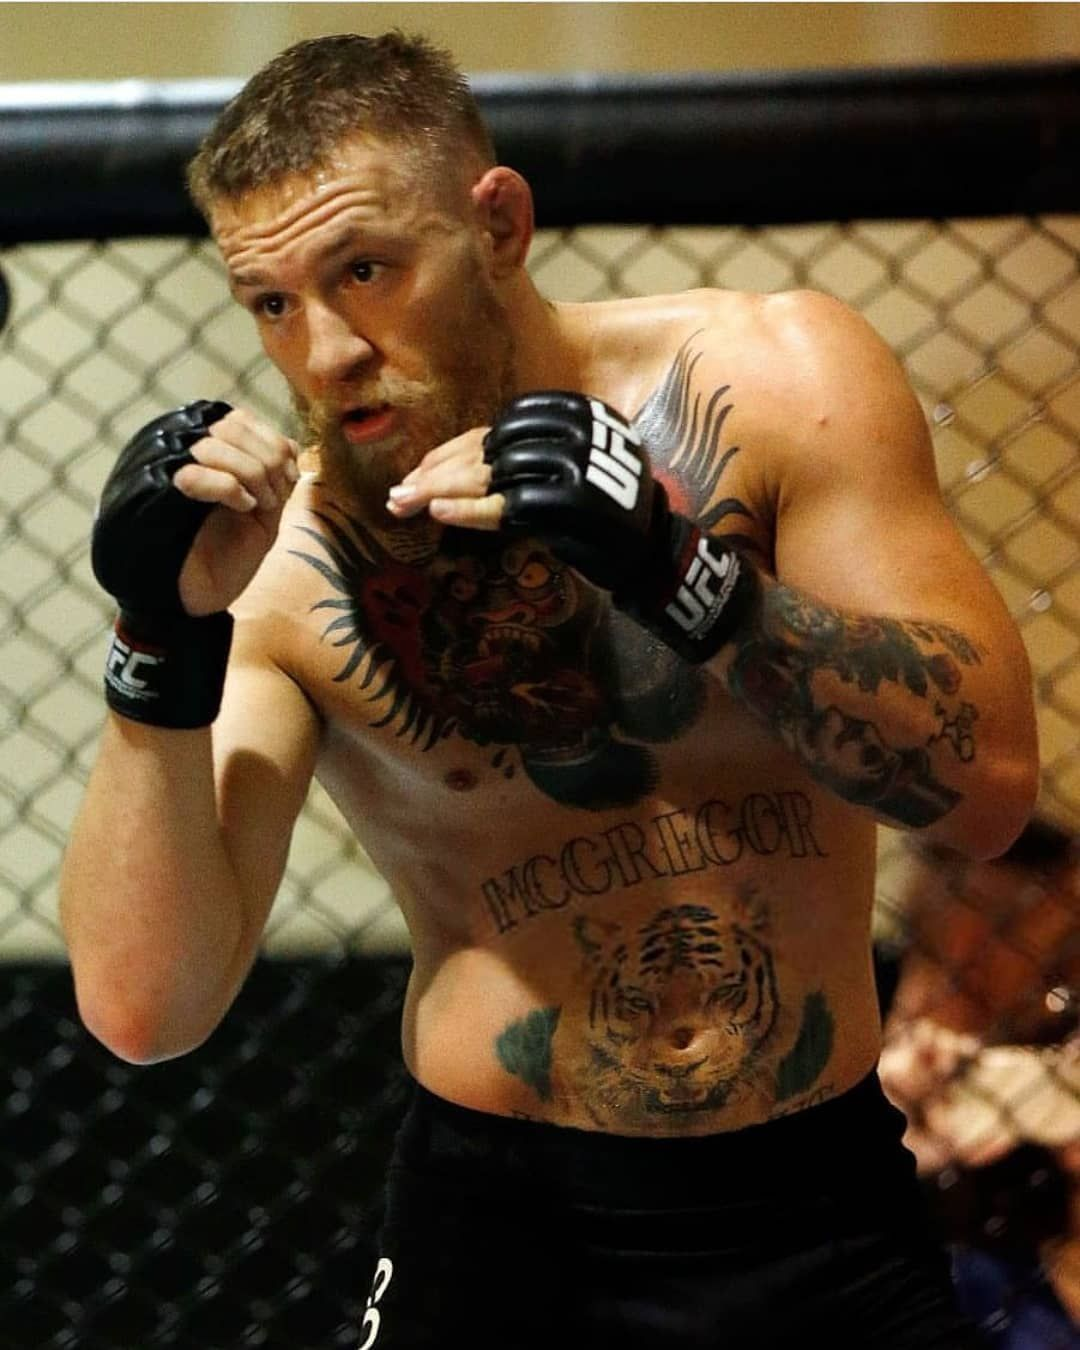 Pin By Curtis Bright On Mcgregor In 2020 Ufc Conor Mcgregor Coner Mcgregor Notorious Conor Mcgregor